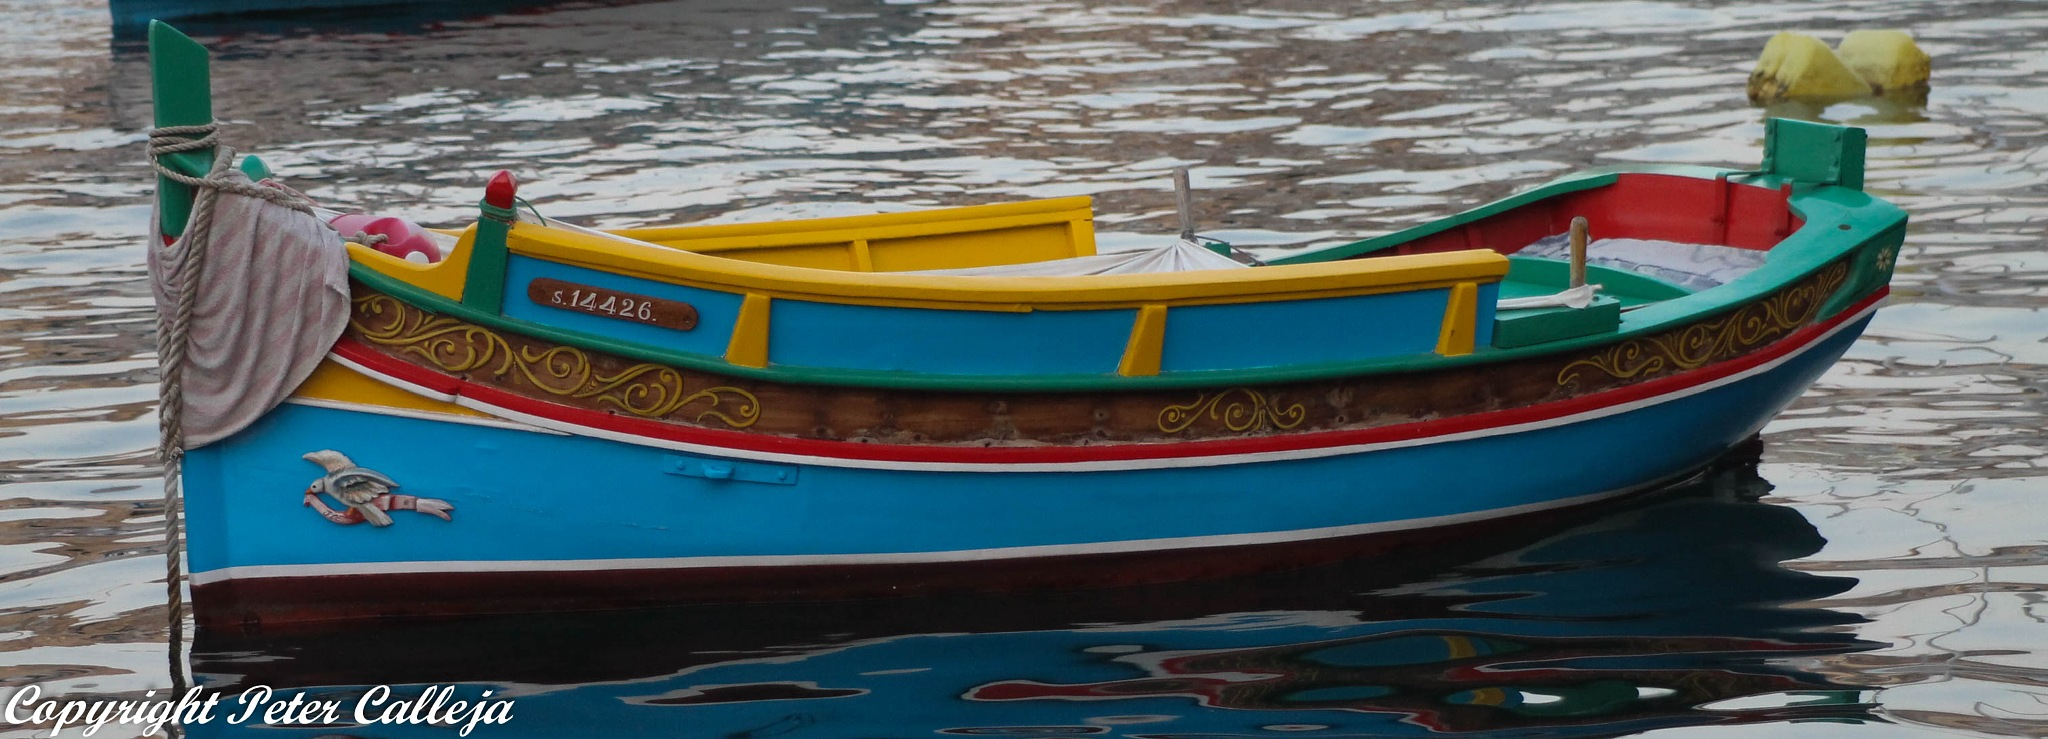 The Fishing Boat by Peter Calleja